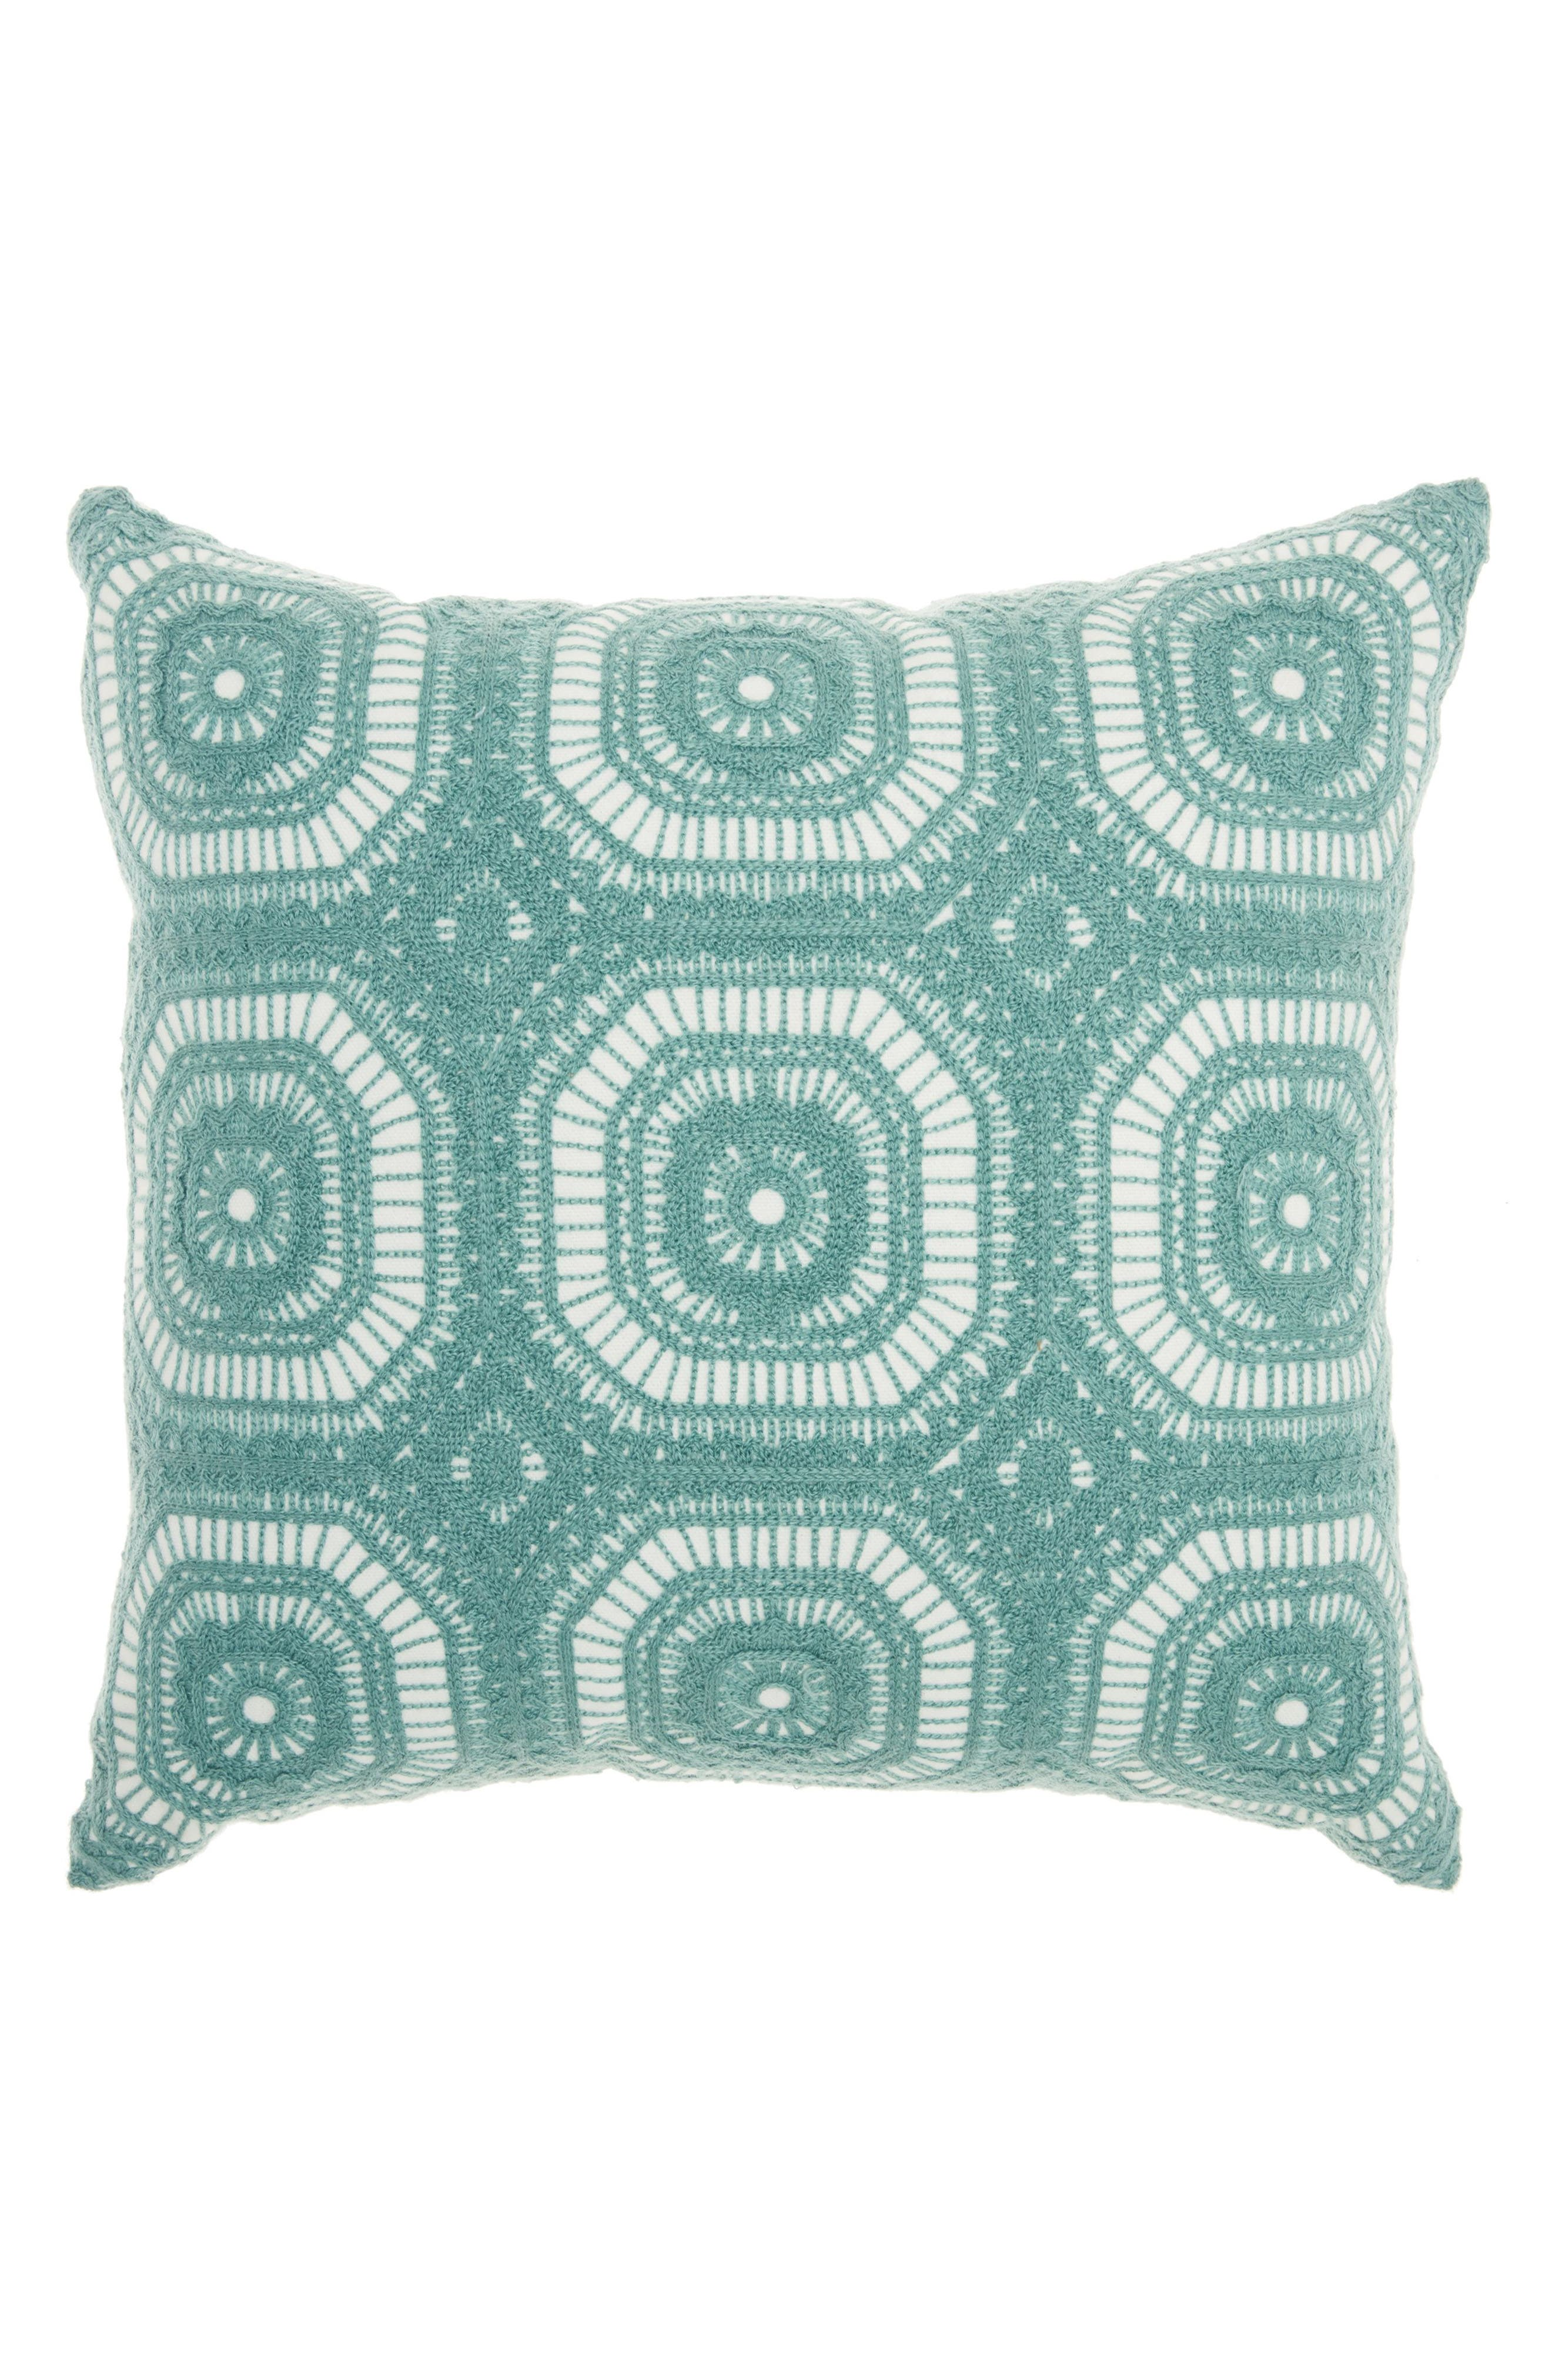 Mina Victory Tile Embroidered Accent Pillow